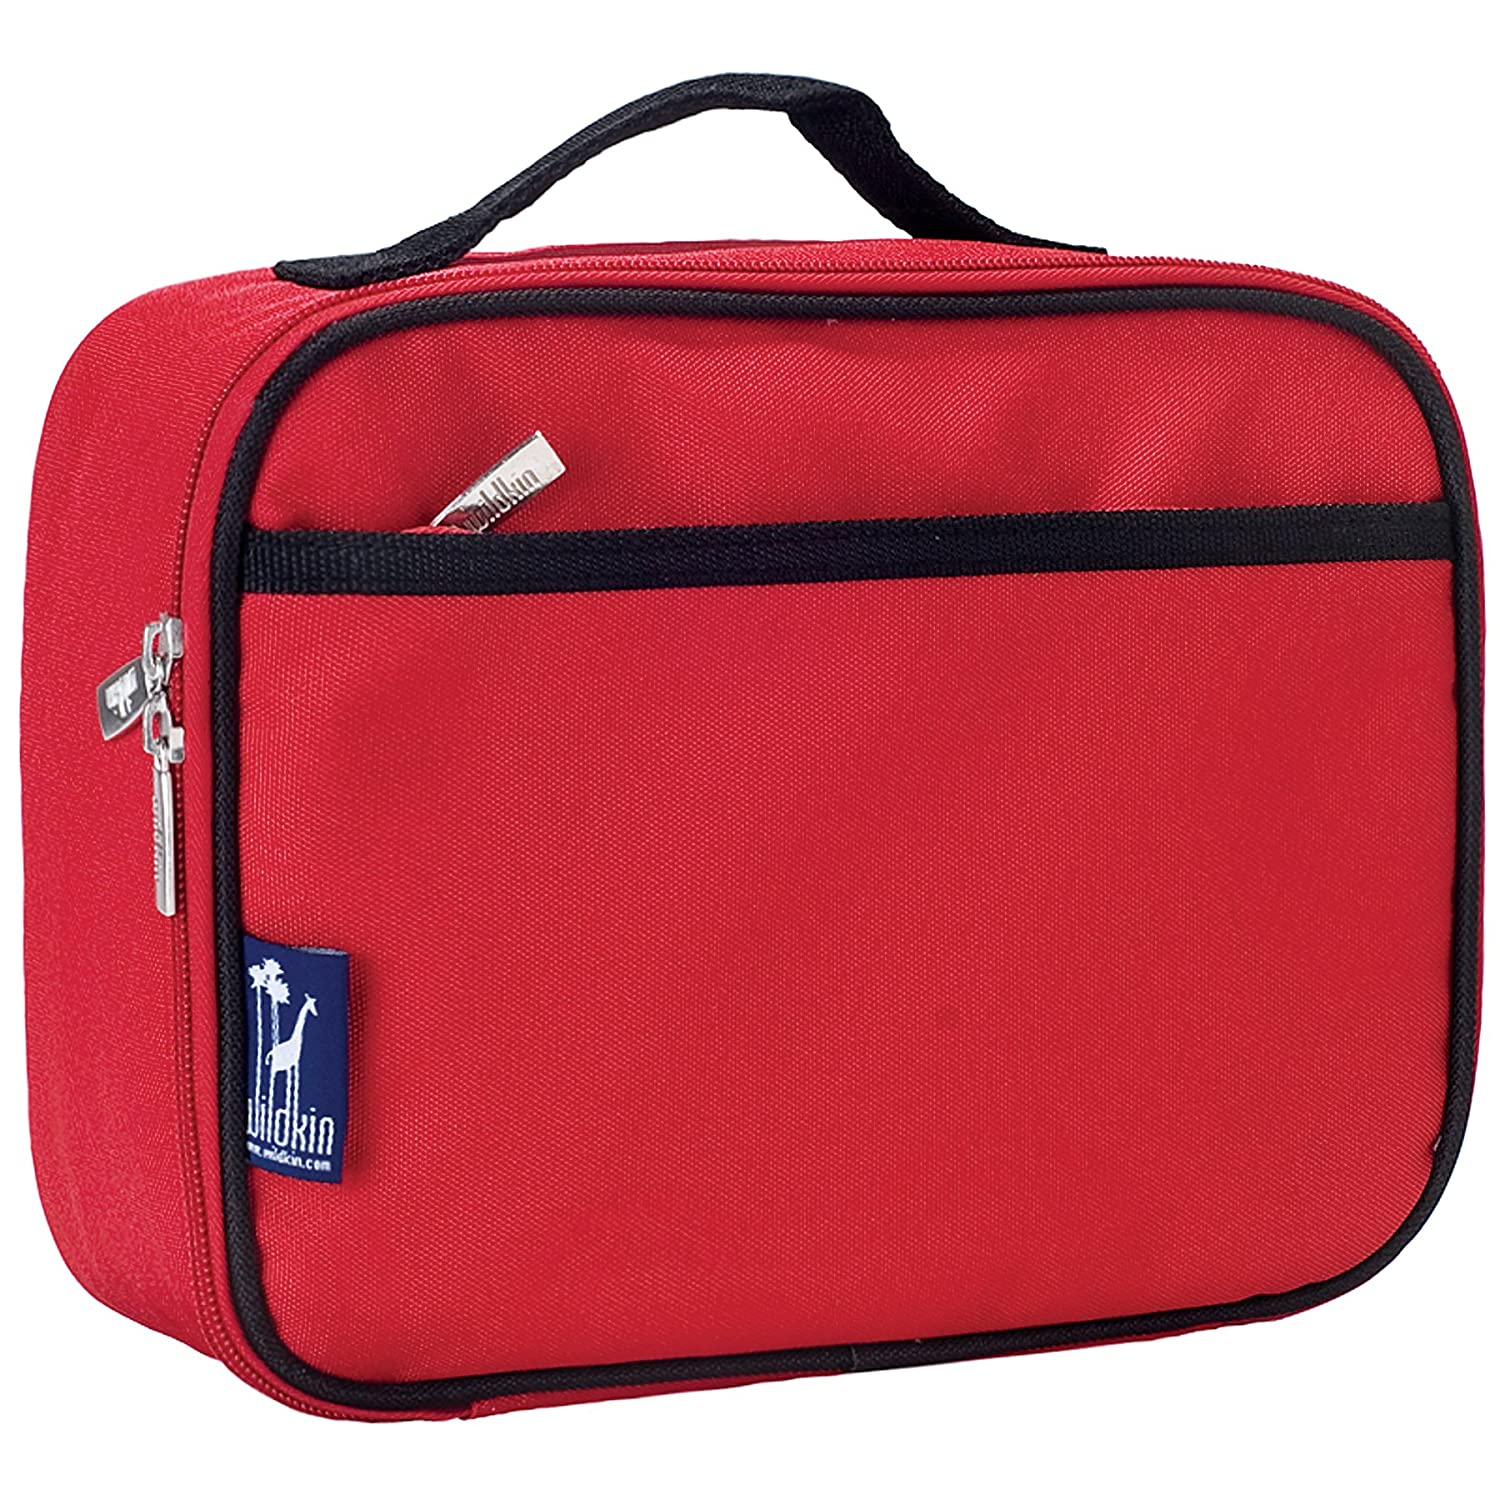 Amazon.com Wildkin Cardinal Red Lunch Box Ll Bean Lunch Box Kitchen u0026 Dining  sc 1 st  Amazon.com & Amazon.com: Wildkin Cardinal Red Lunch Box: Ll Bean Lunch Box ... Aboutintivar.Com